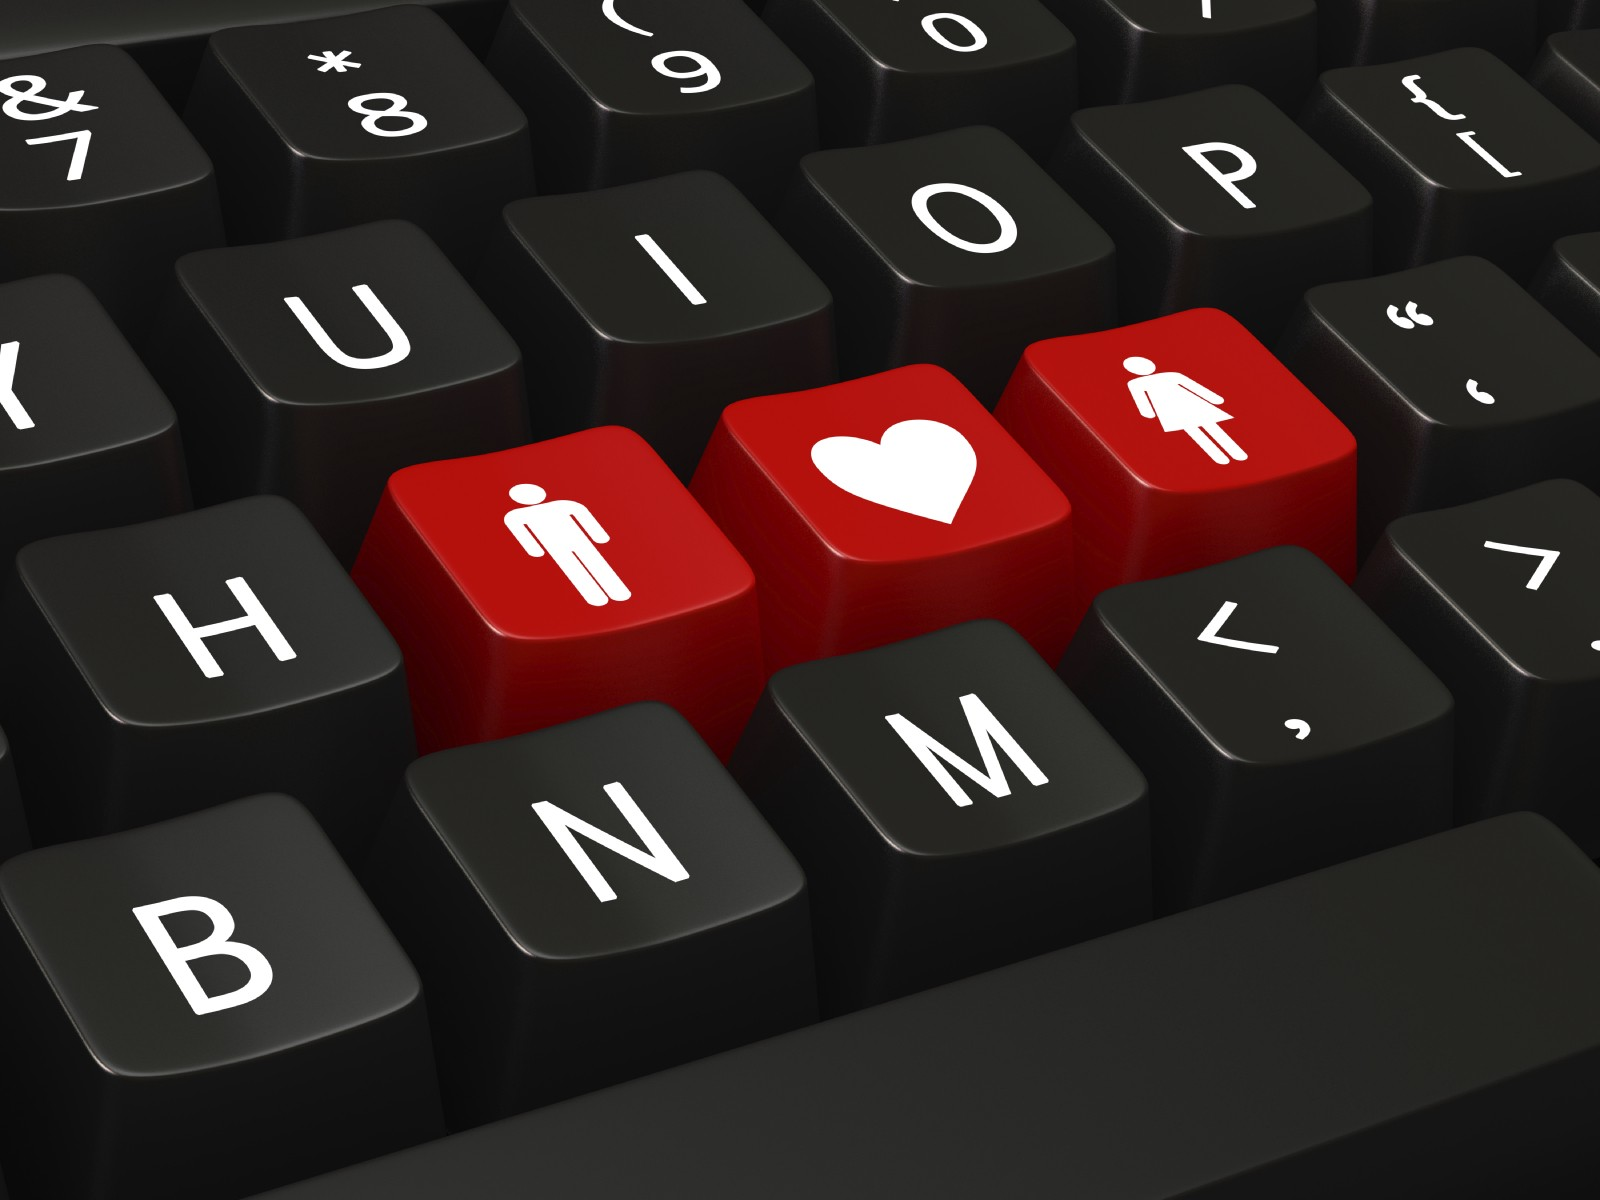 Key to writing online dating profile